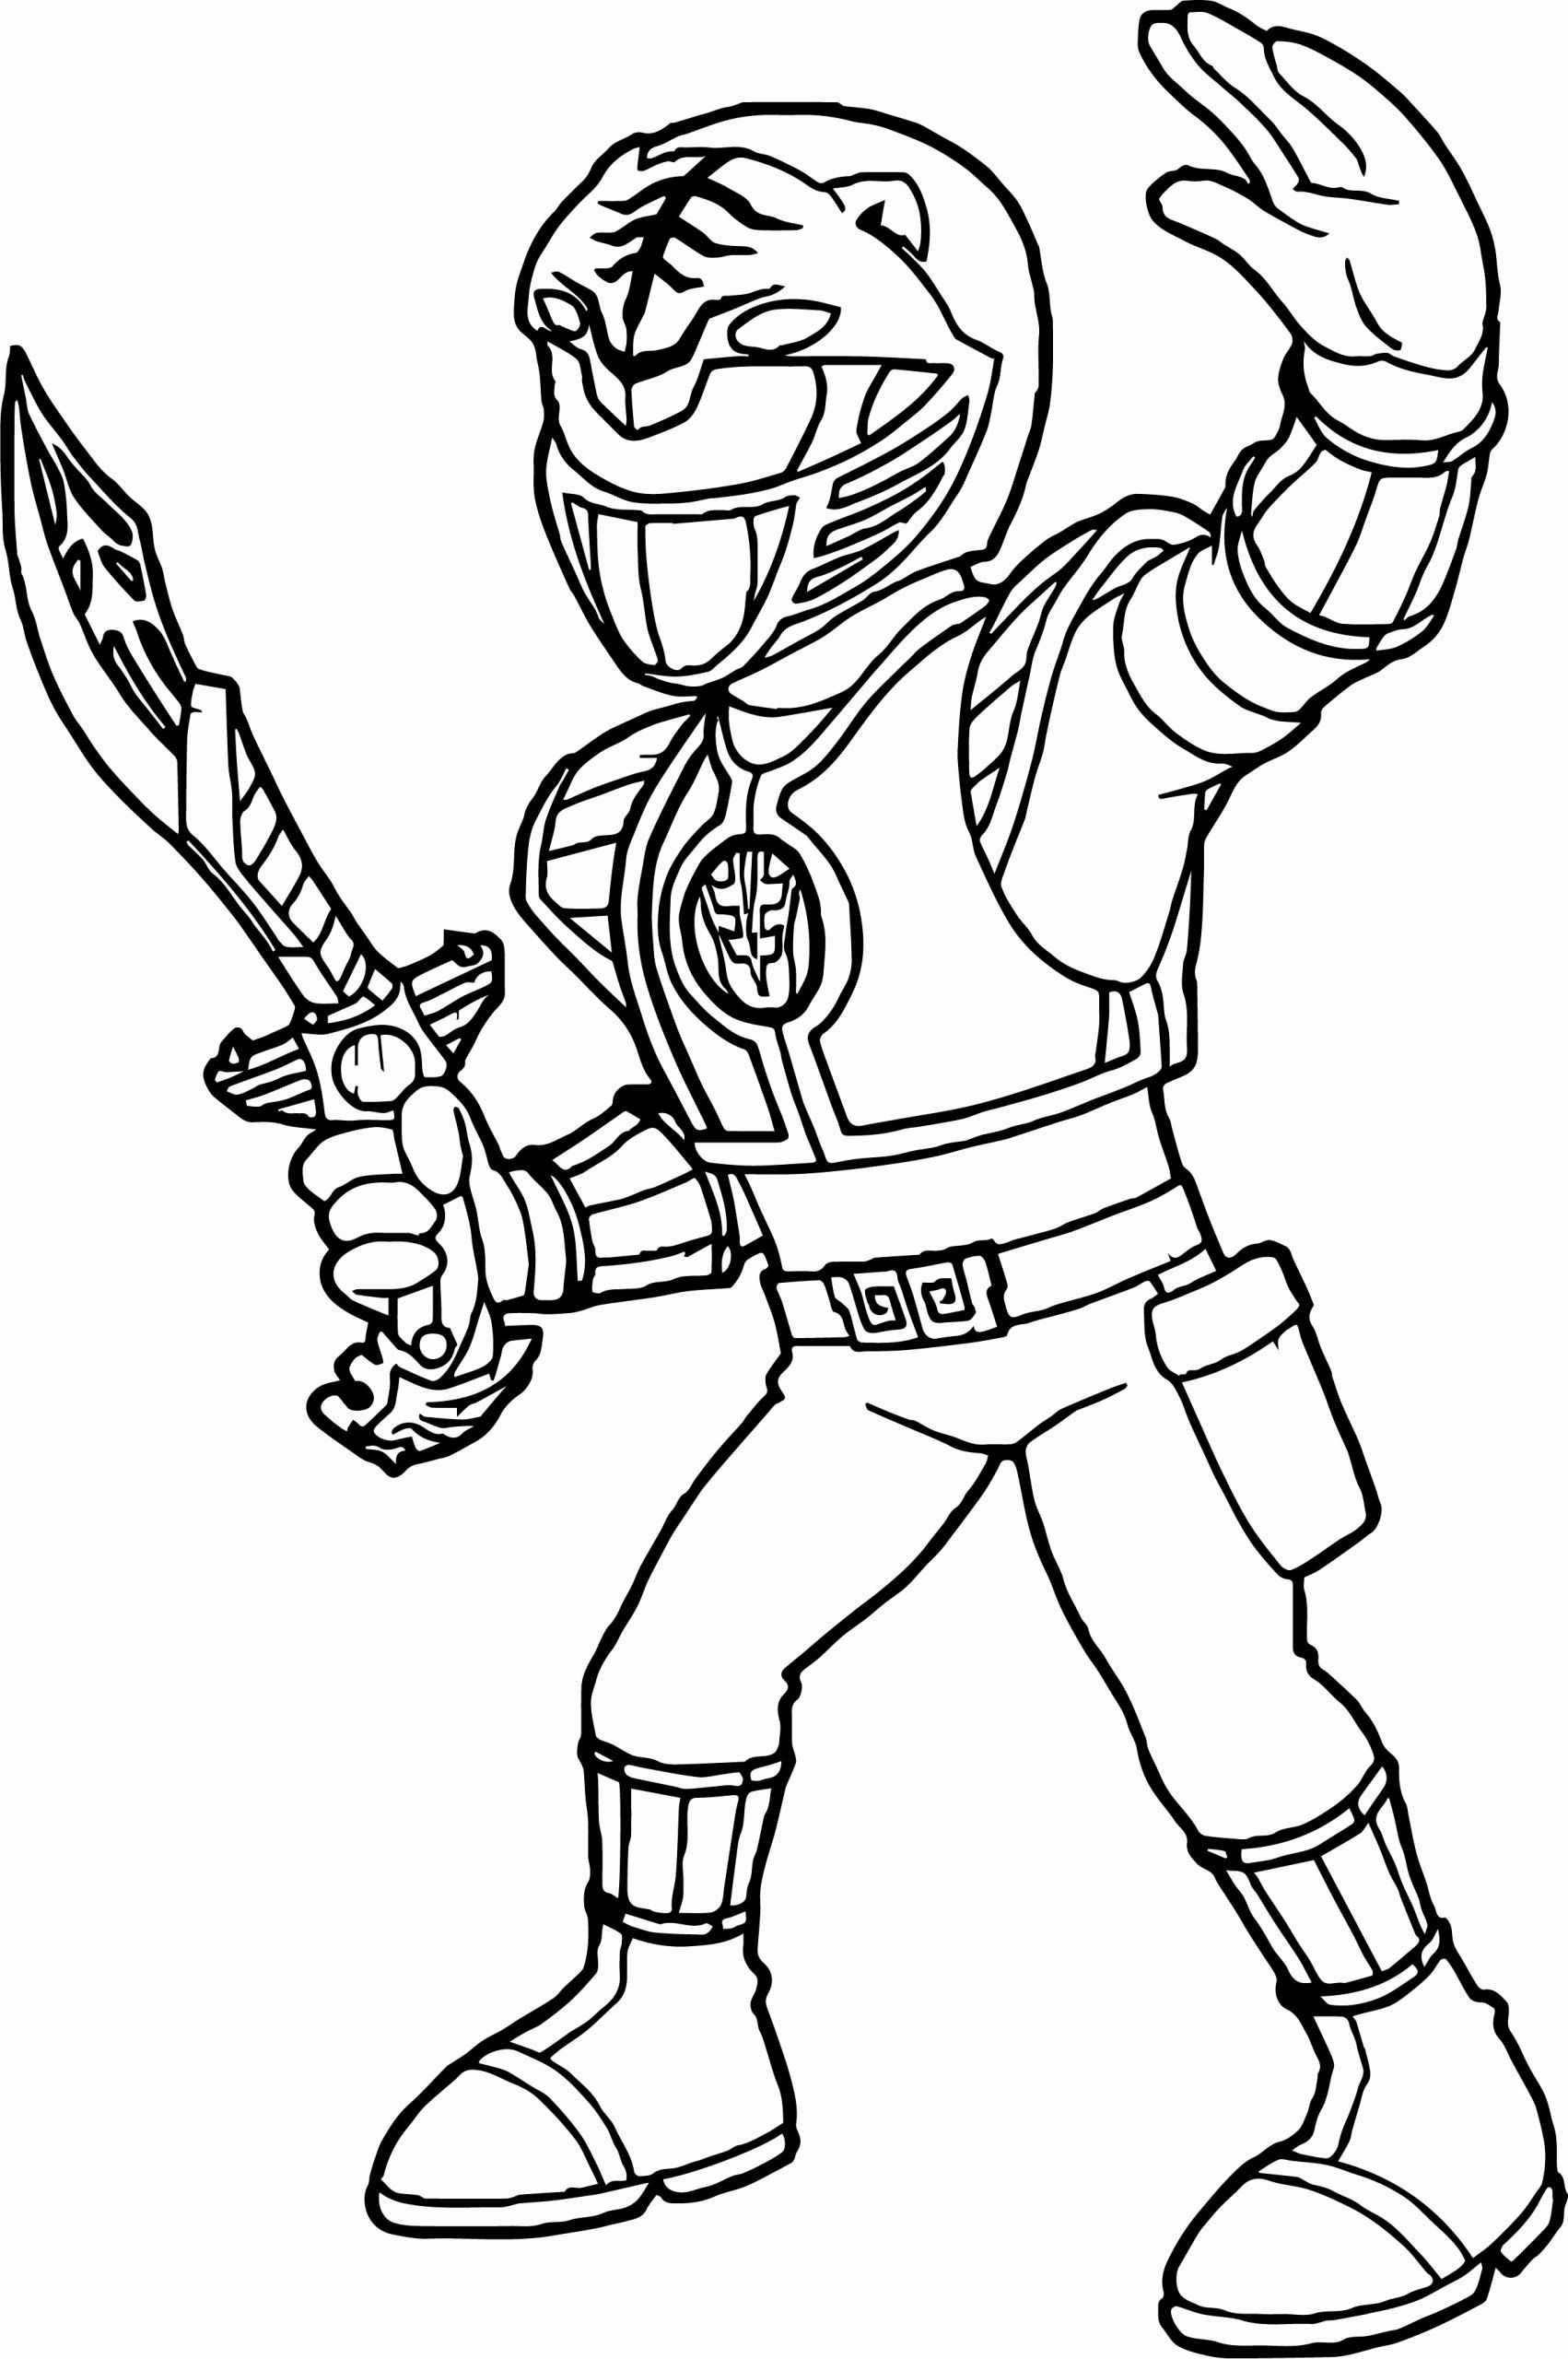 Power Rangers Coloring Page Beautiful Power Rangers White Ranger Coloring Page Power Rangers Coloring Pages Power Rangers Coloring Pages